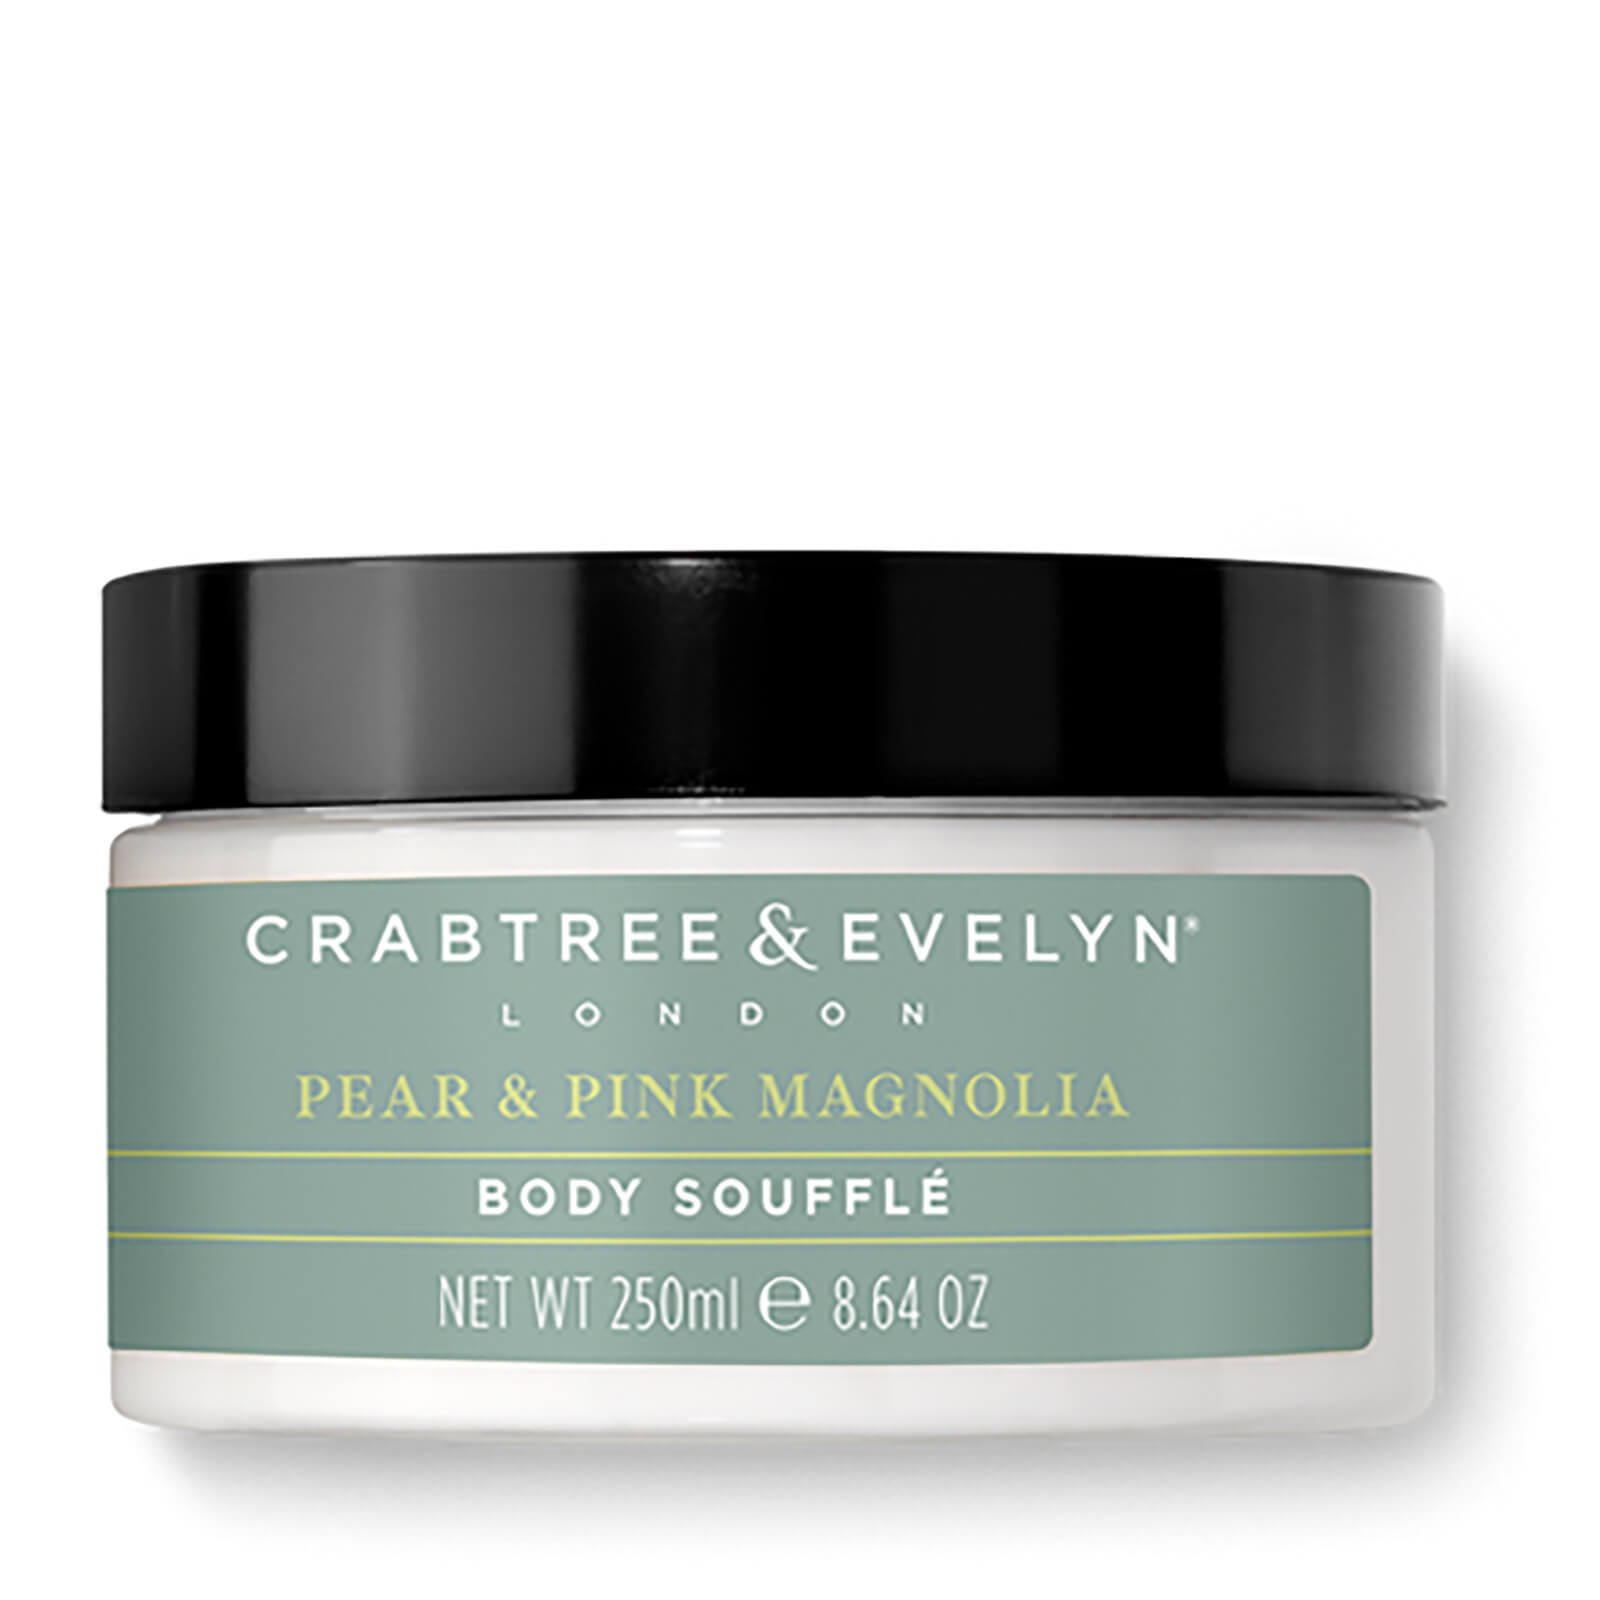 Crabtree Evelyn Pear And Pink Magnolia Uplifting Body Souffle 250ml Free Shipping Lookfantastic